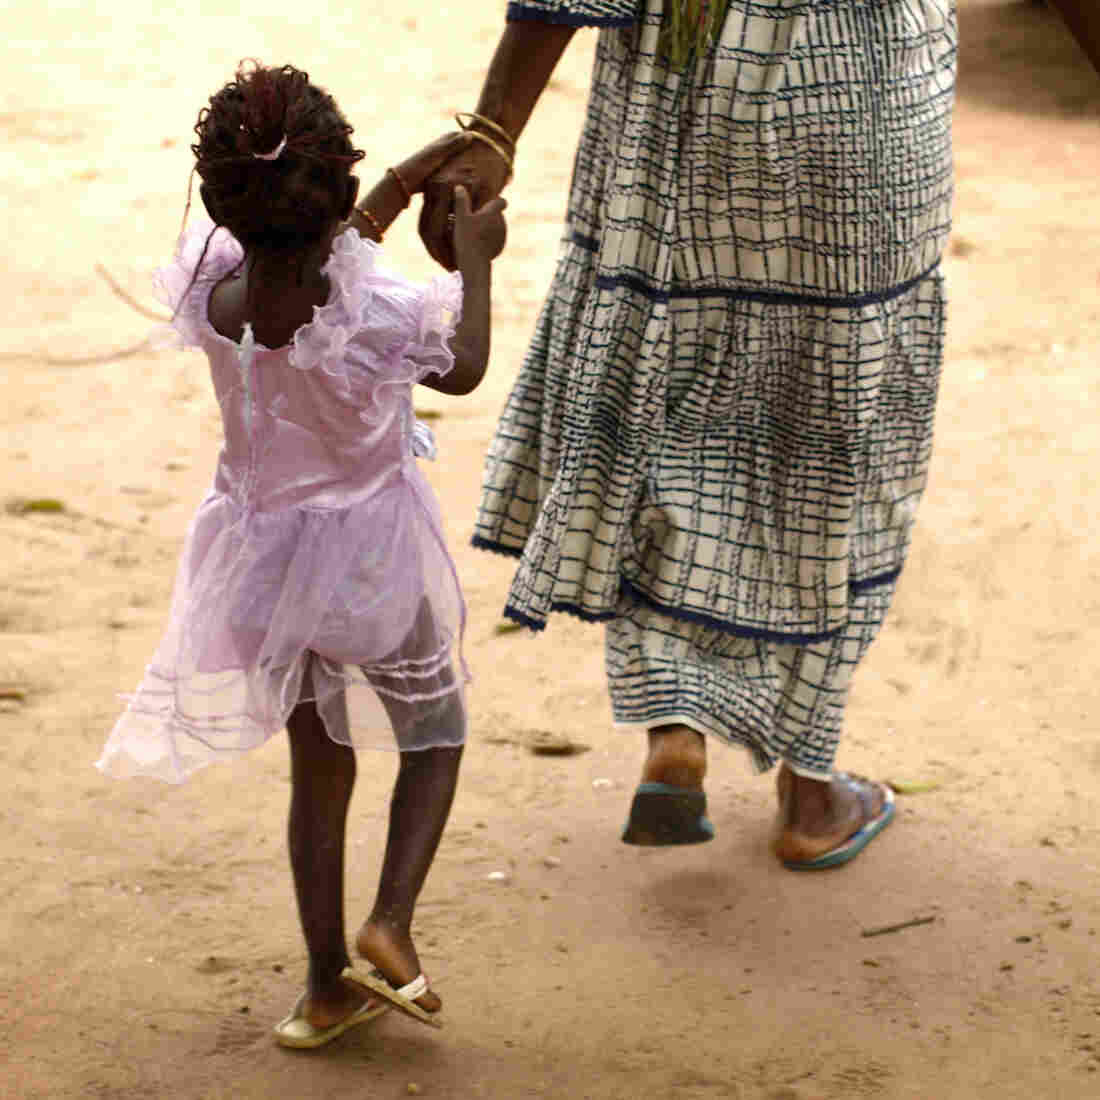 Female Genital Mutilation On The Decline, But Still Too Common